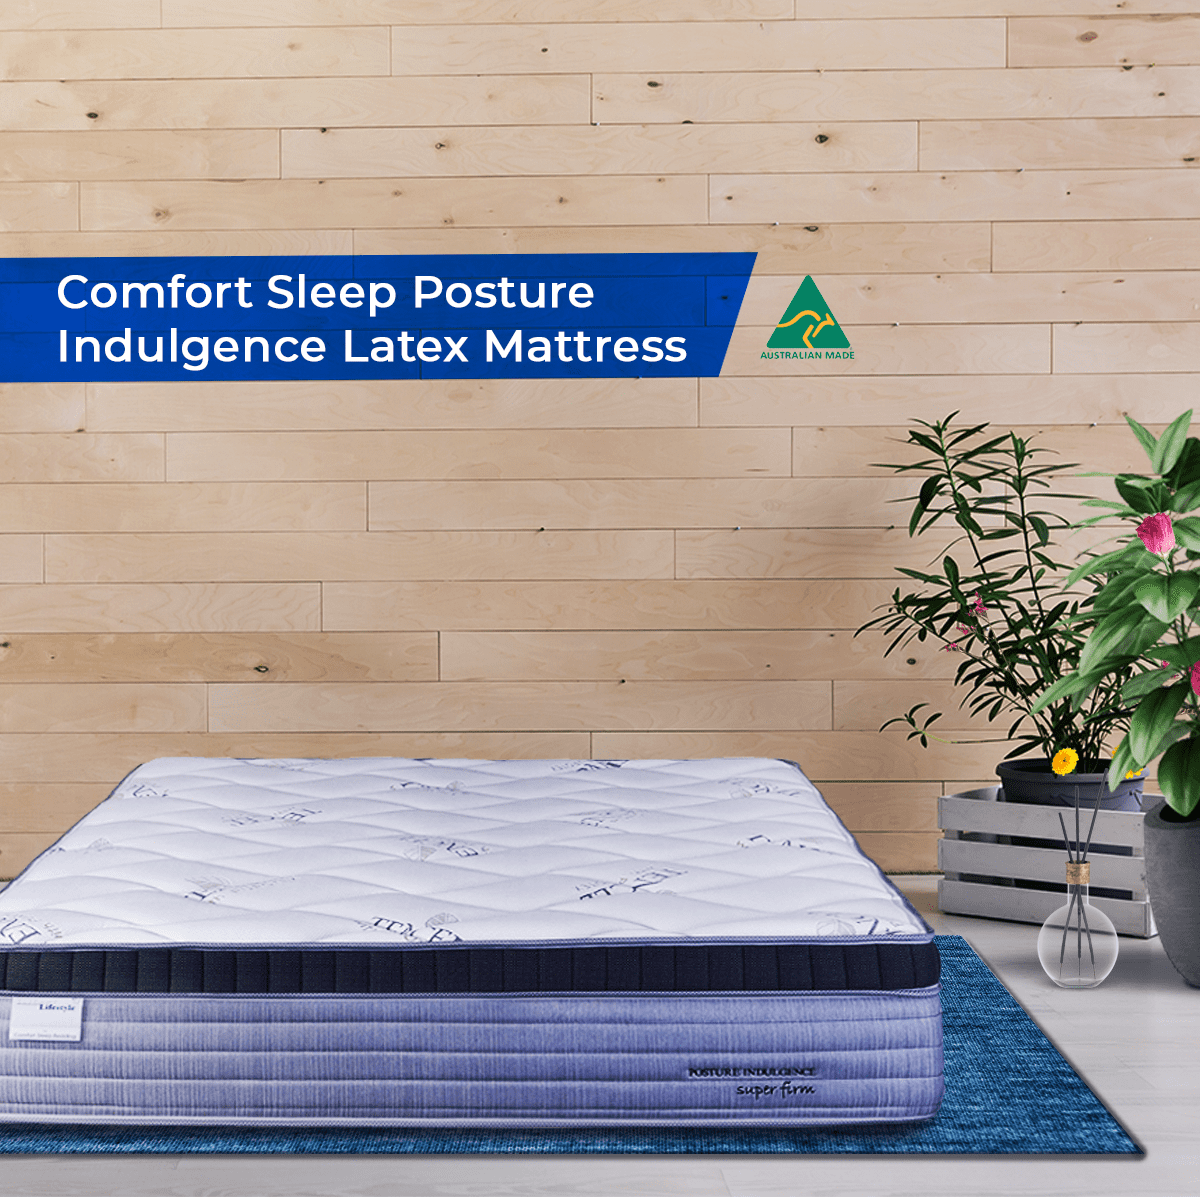 Comfort Sleep Posture Indulgence Latex Mattress